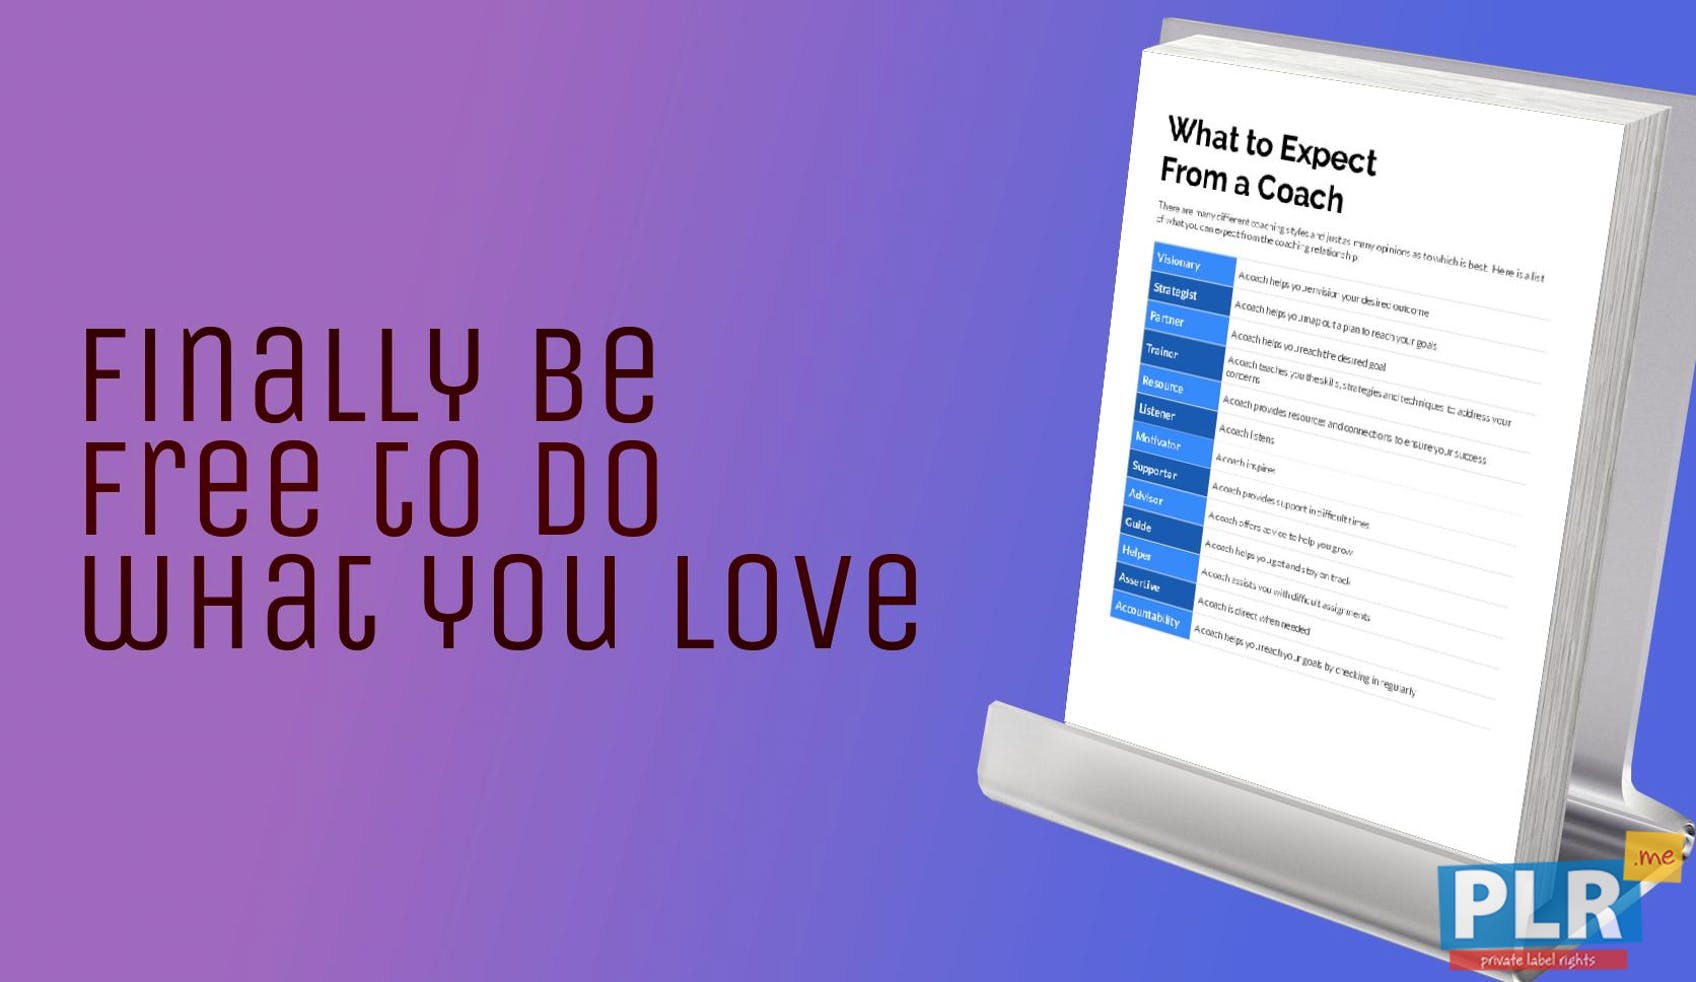 What To Expect From A Coach